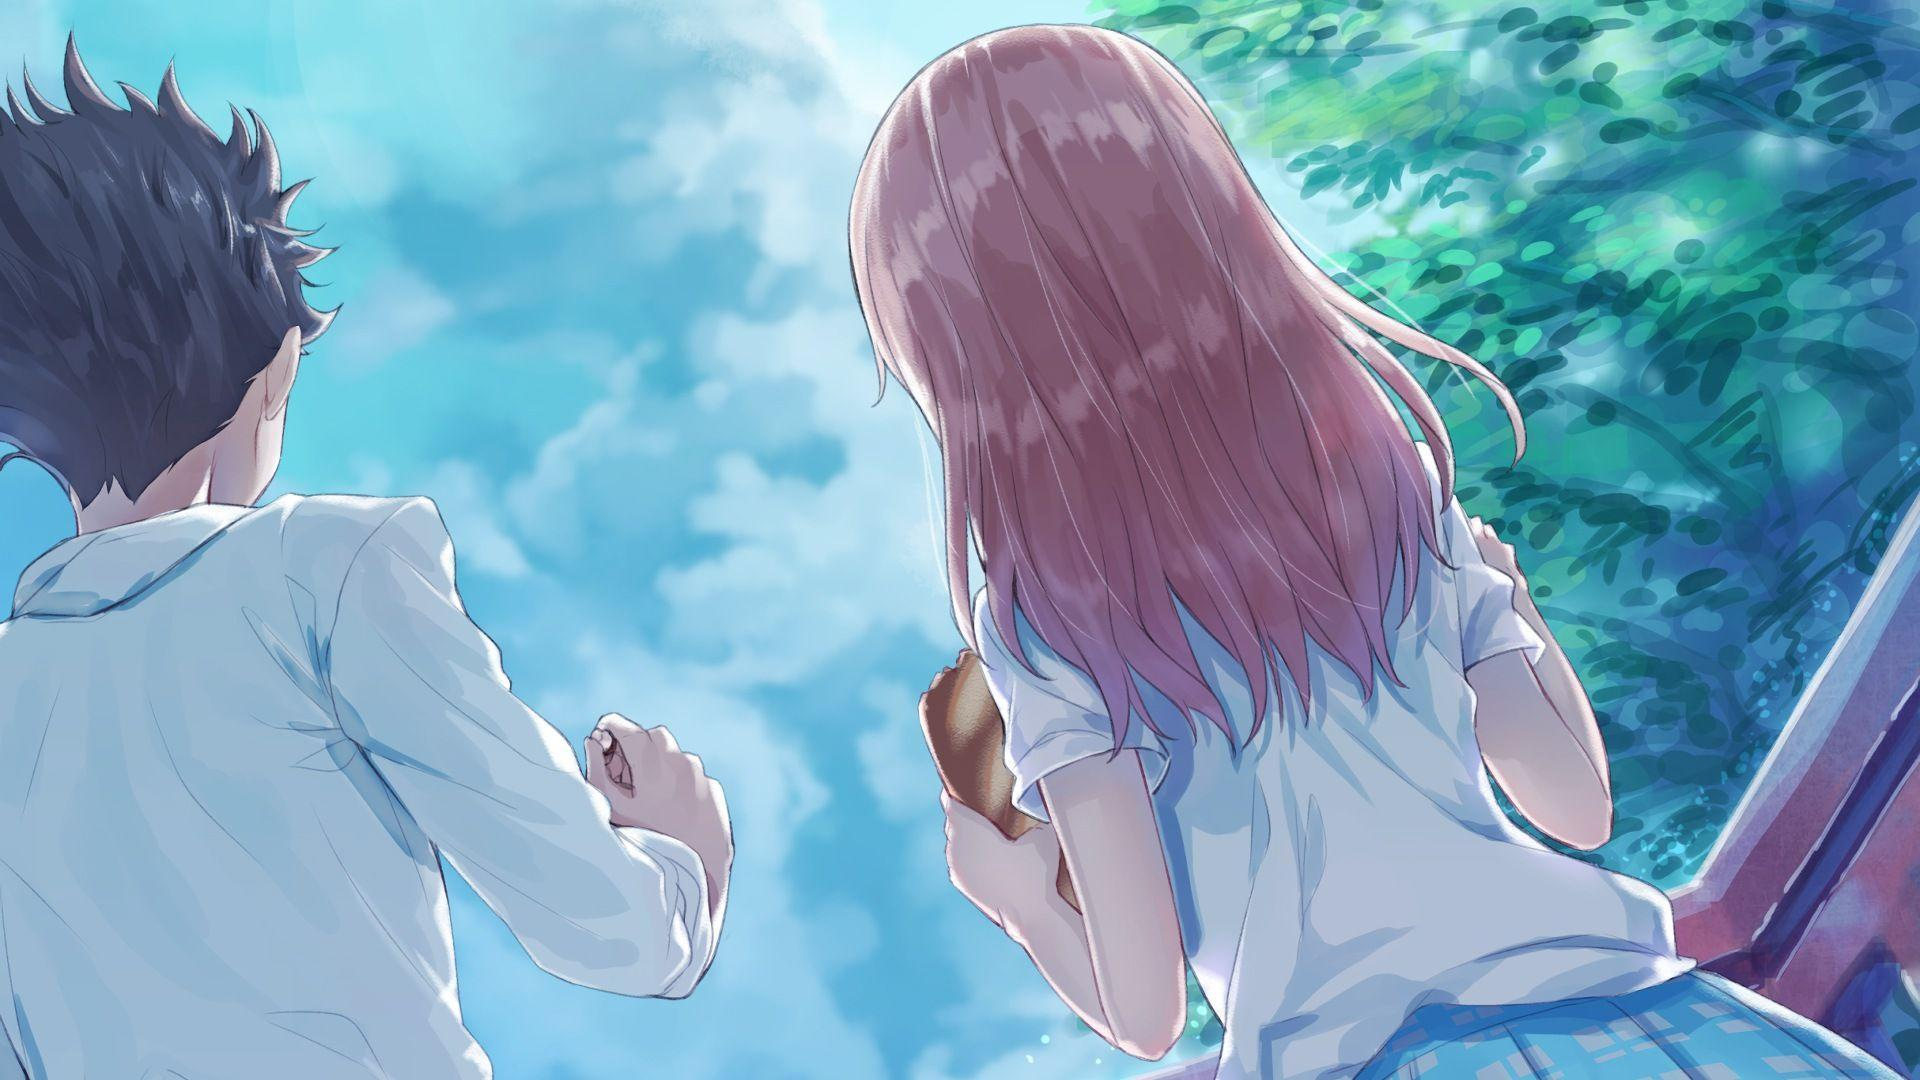 A Silent Voice Wallpapers - Wallpaper Cave